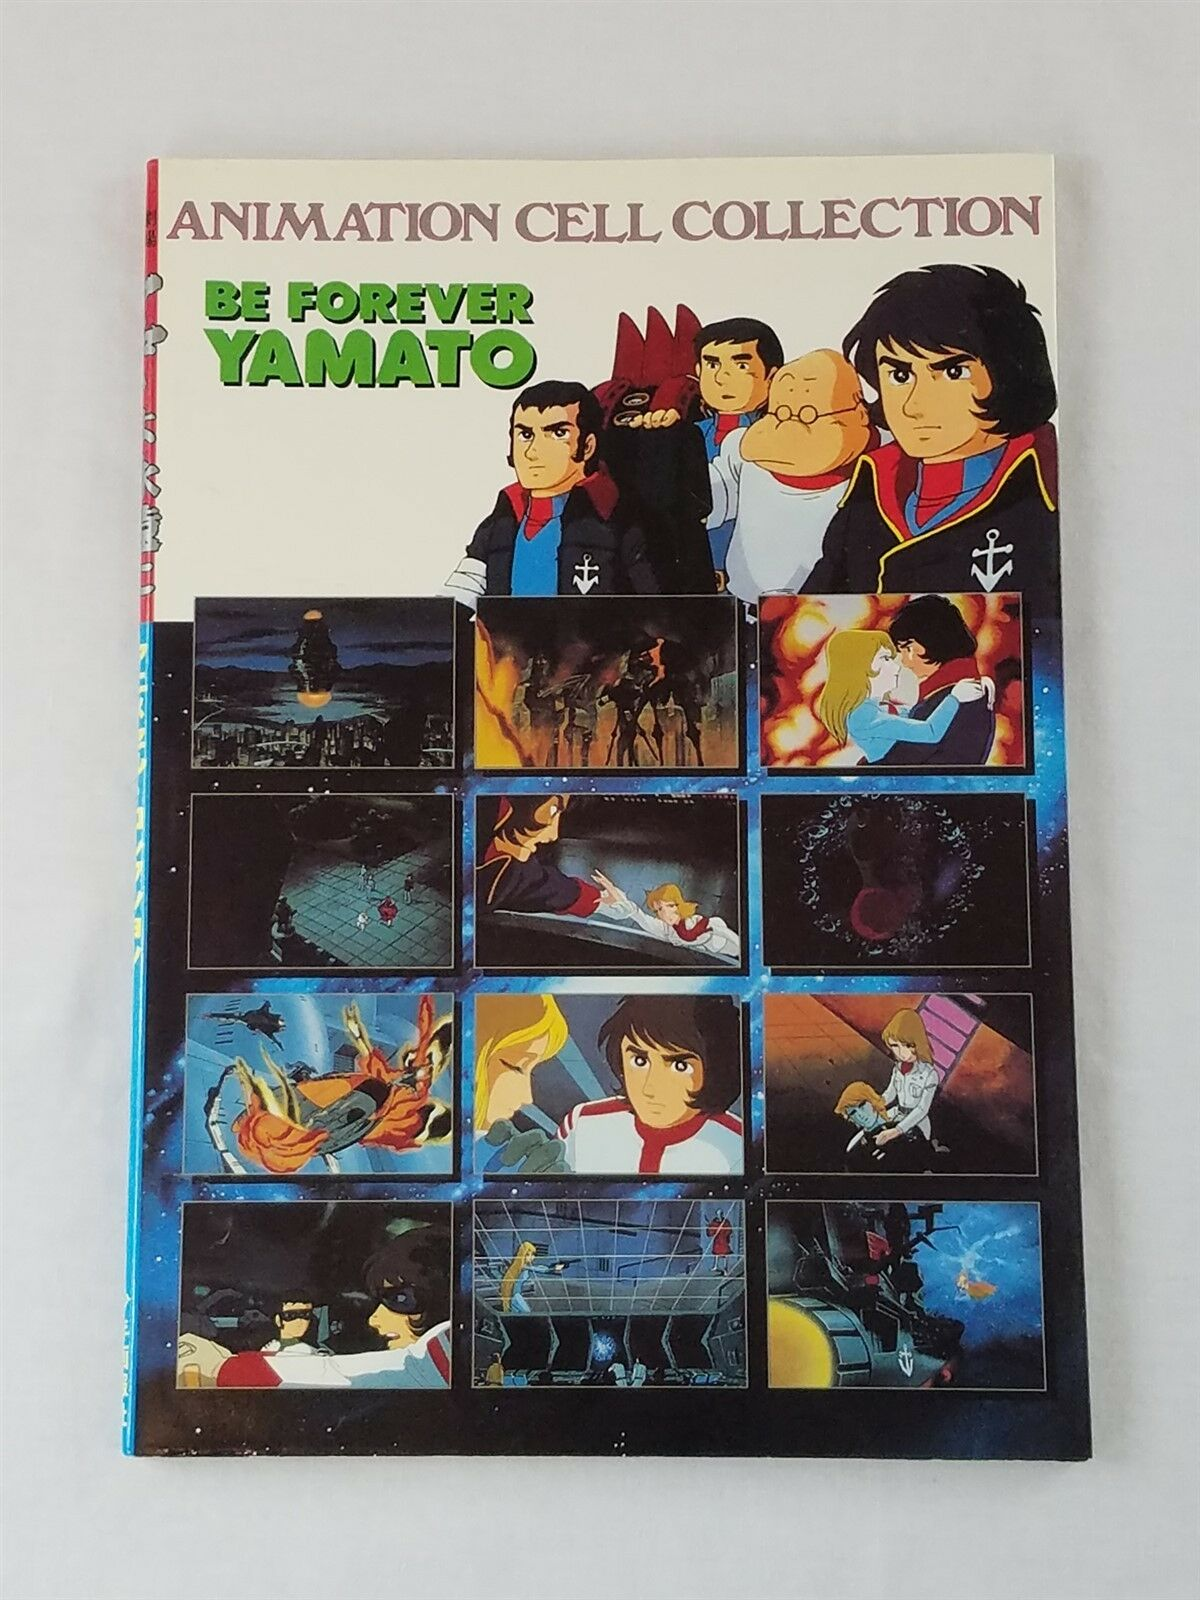 BE FOREVER YAMATO ANIMATION CELL COLLECTION JAPANESE LANGUAGE NM